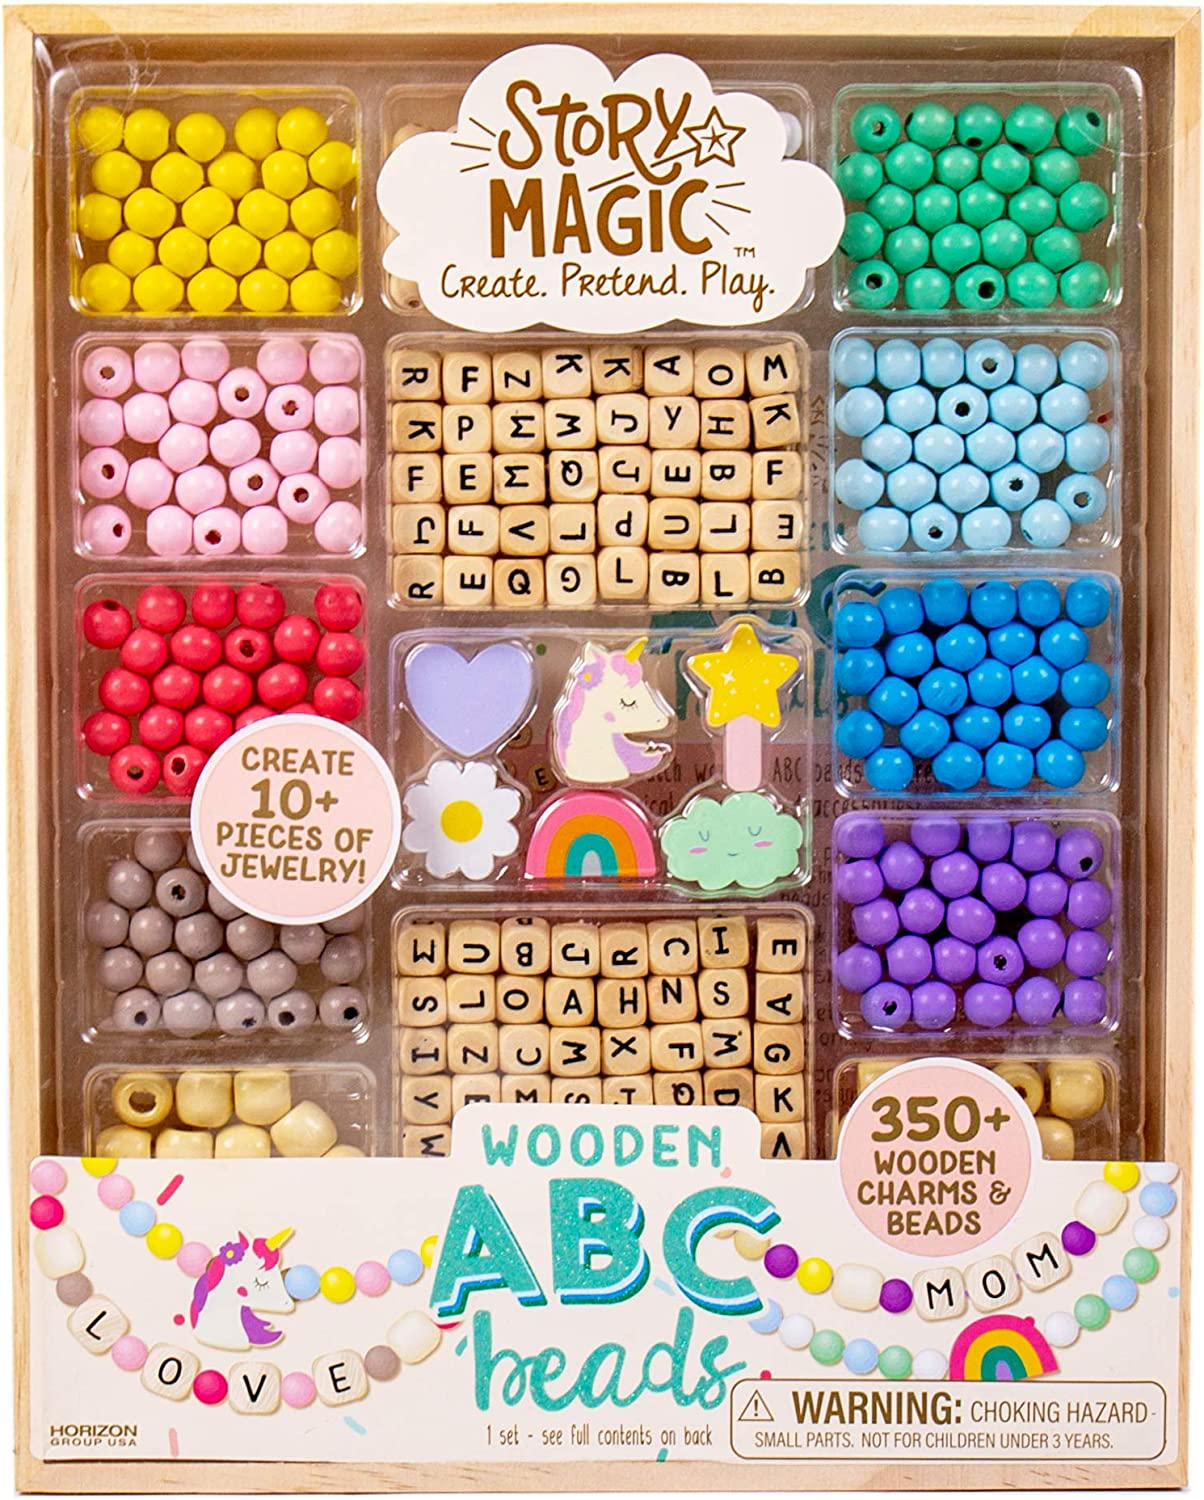 Story Magic Wooden ABC Beads by Horizon Group USA Premium Wood Jewelry Making Kit Makes 10+ Pieces of Jewelry Over 350 Wooden Beads /& Charms